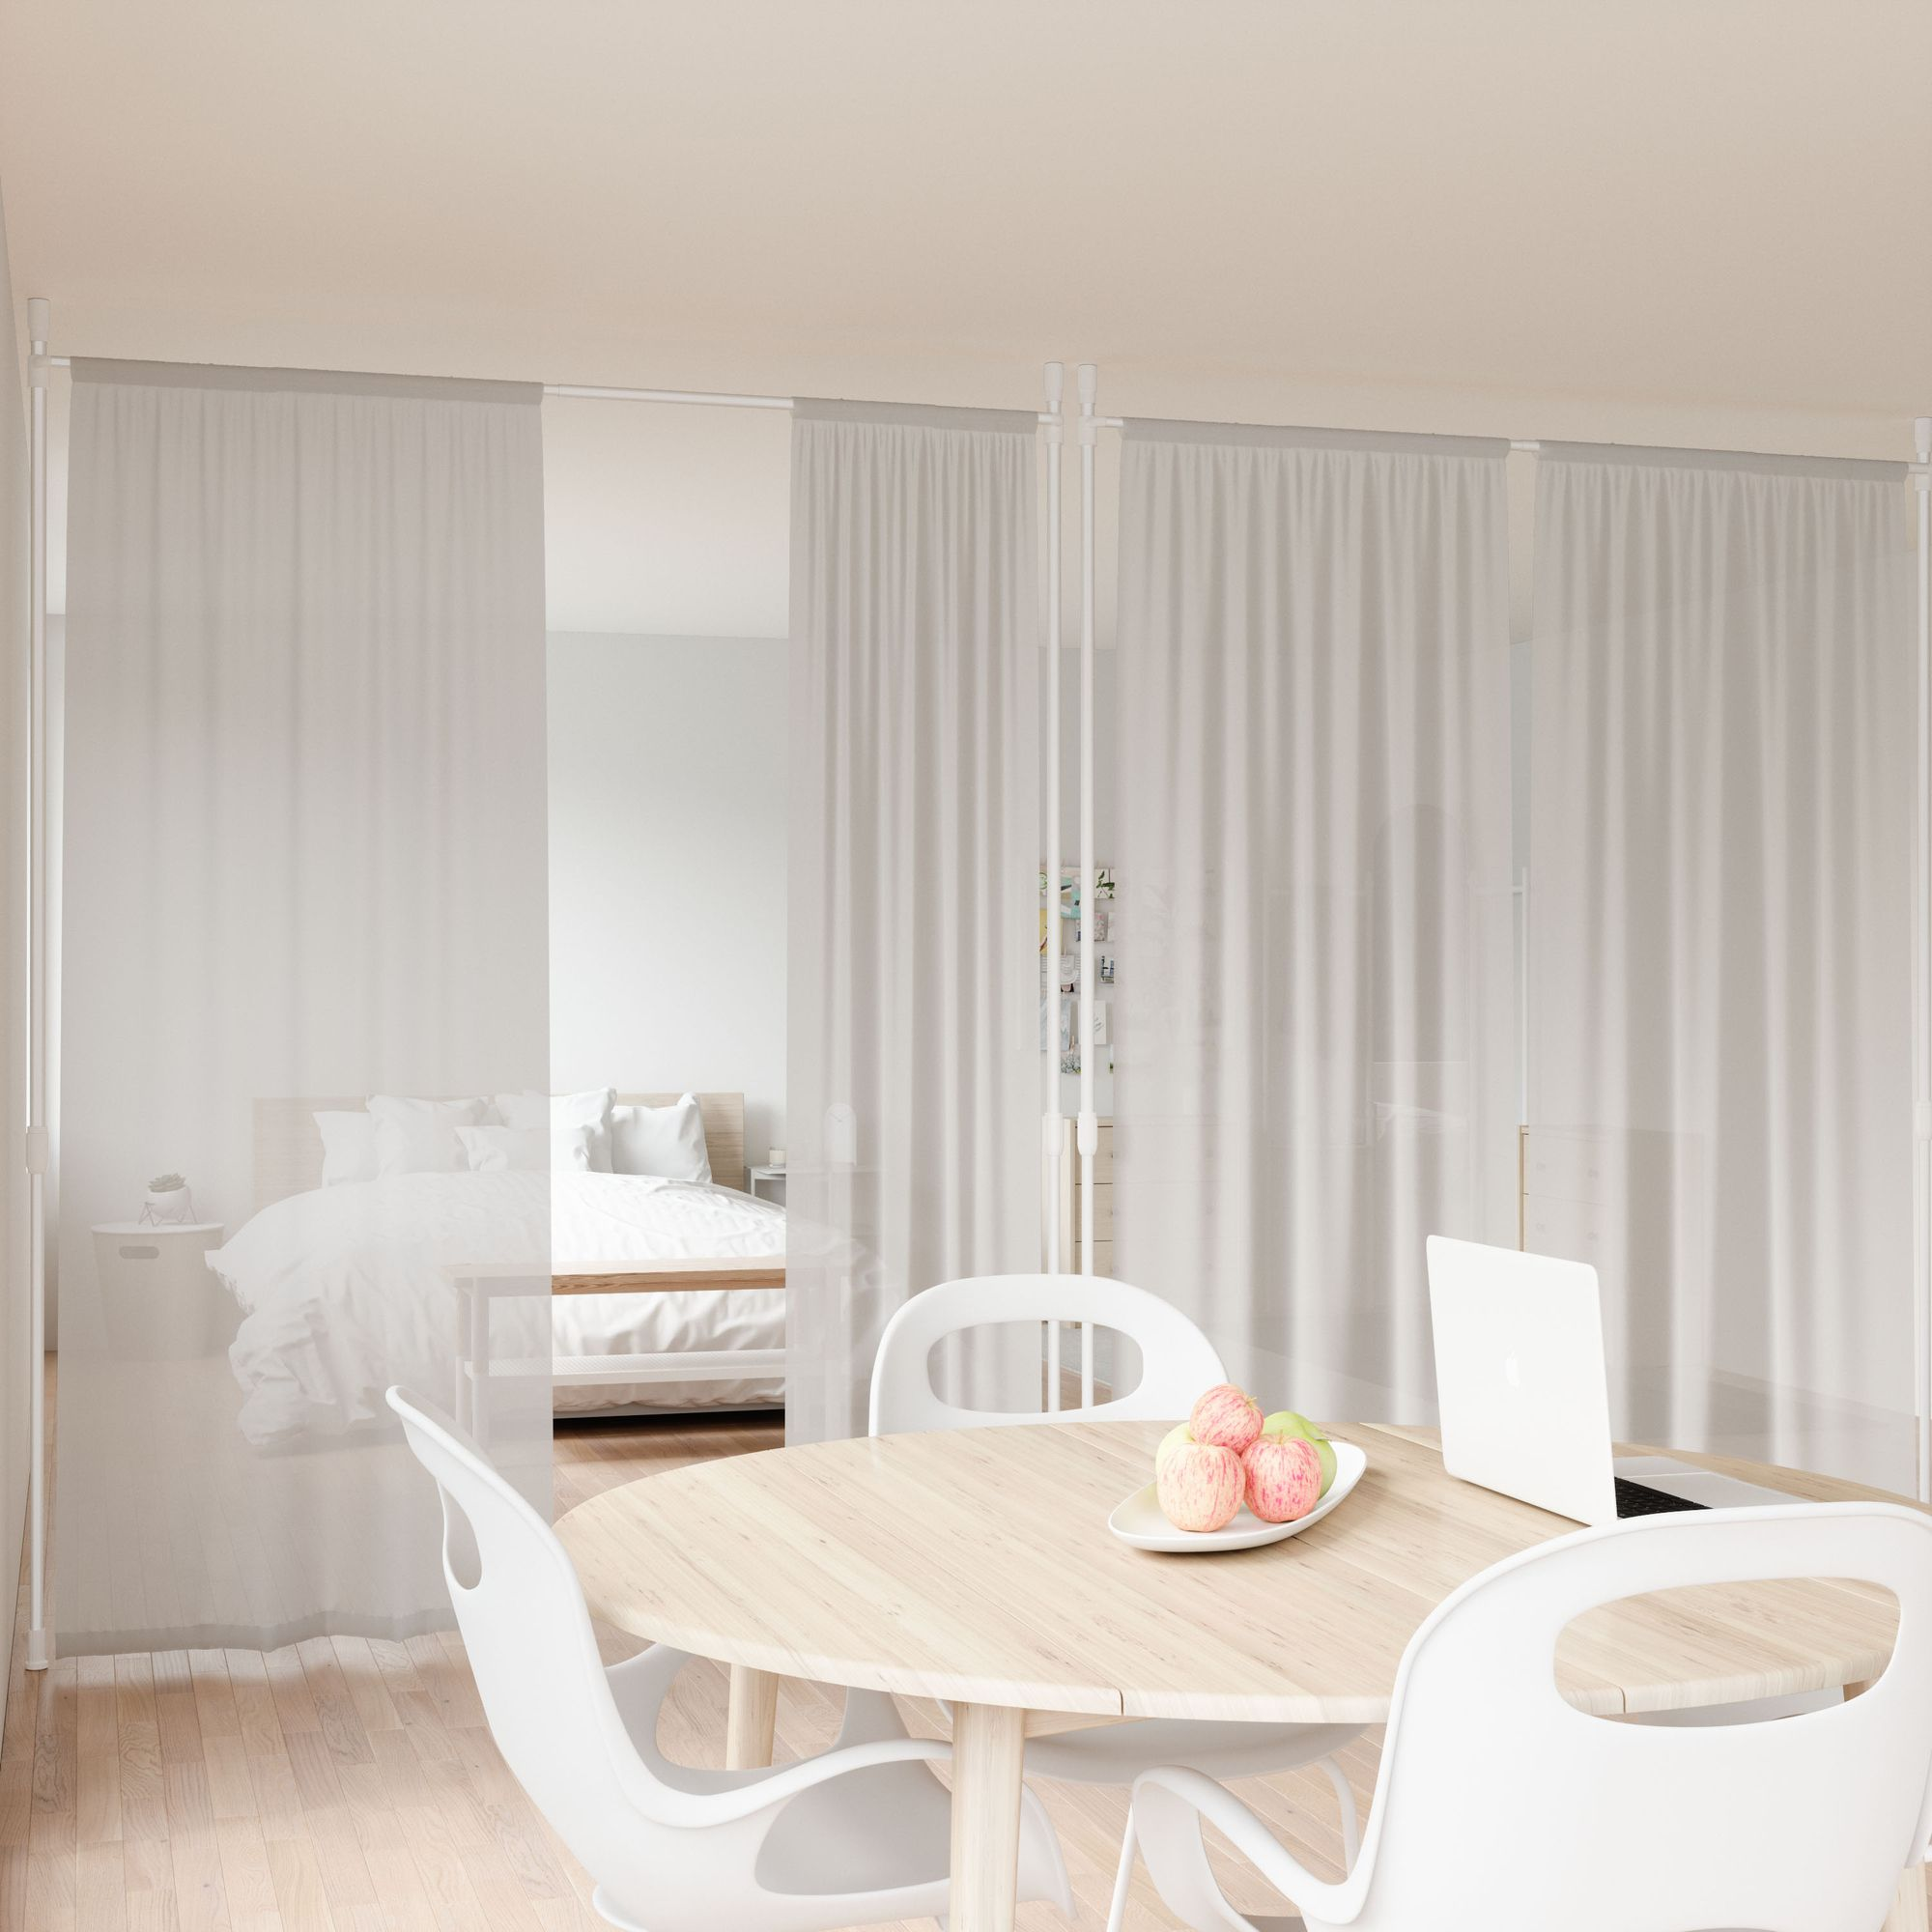 Anywhere Curtain Rod And Room Divider in 2020 Living